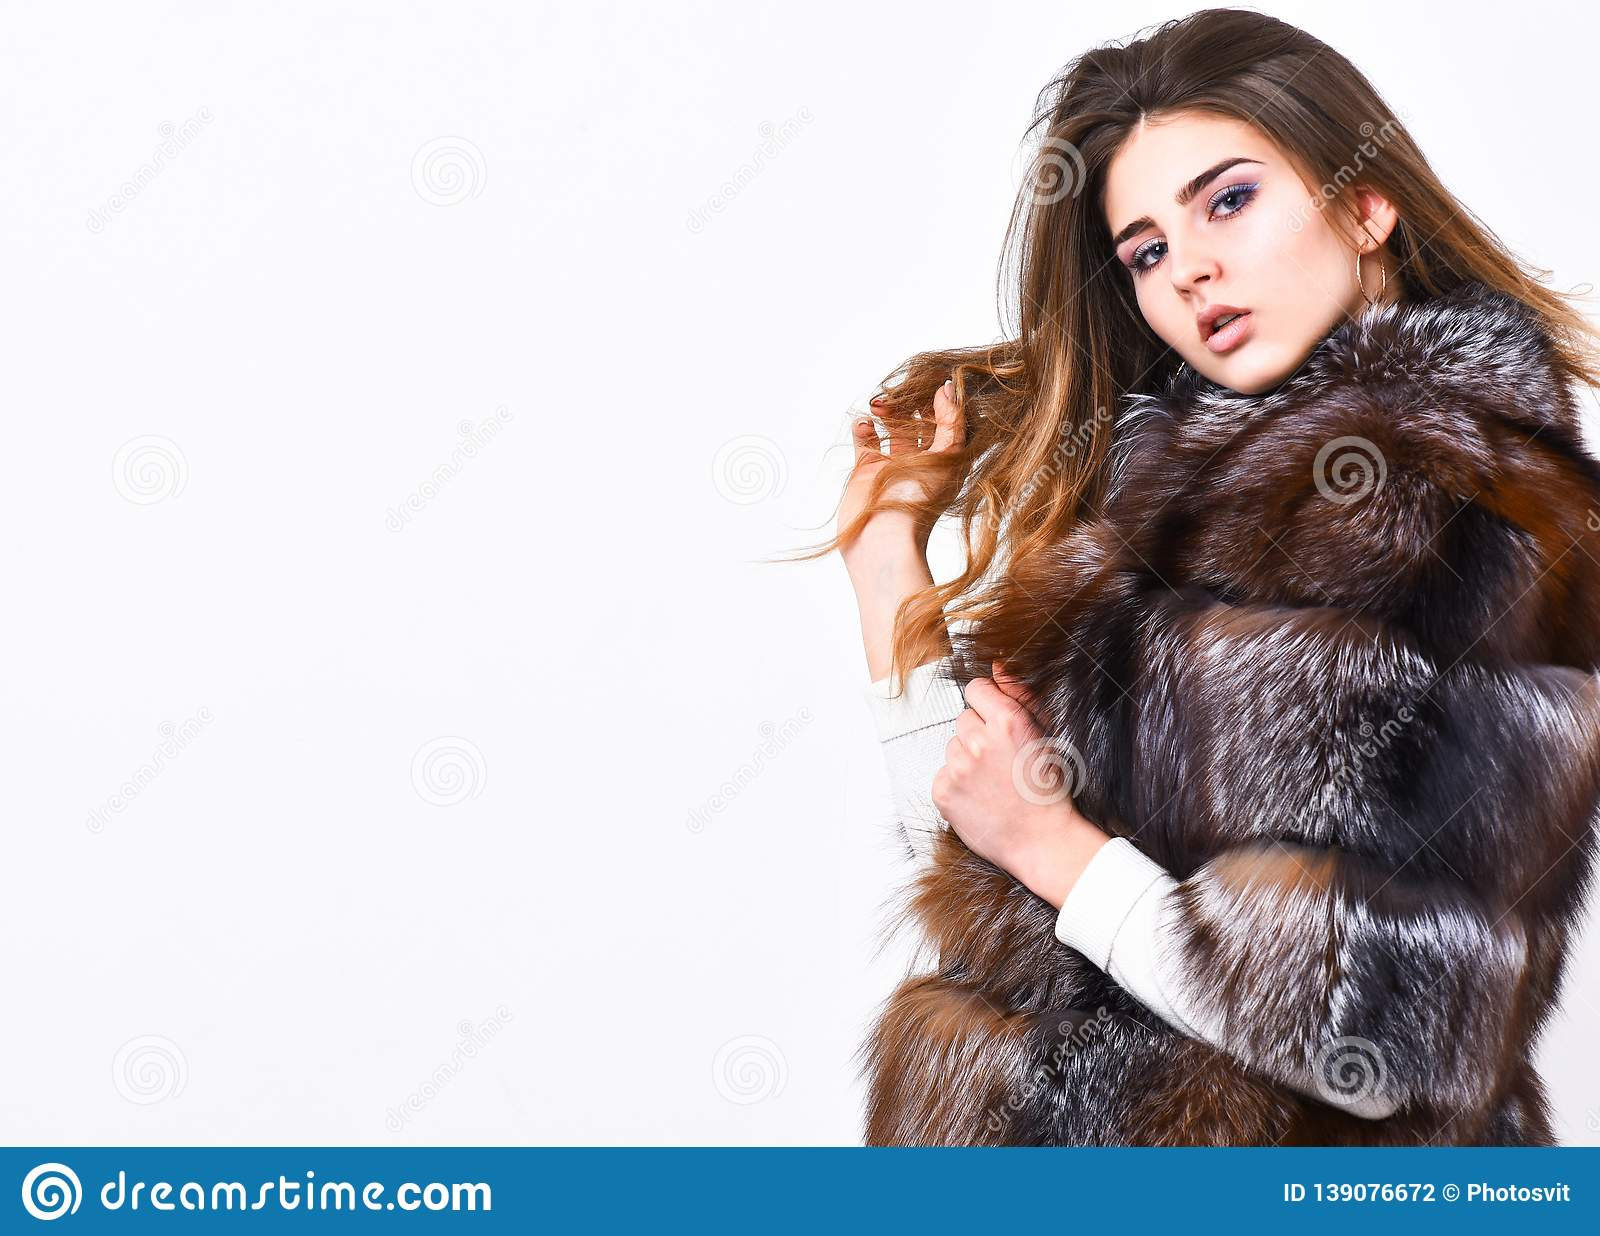 Female brown fur coat. Fur store model enjoy warm in soft fluffy coat with collar. Fur fashion concept. Winter elite